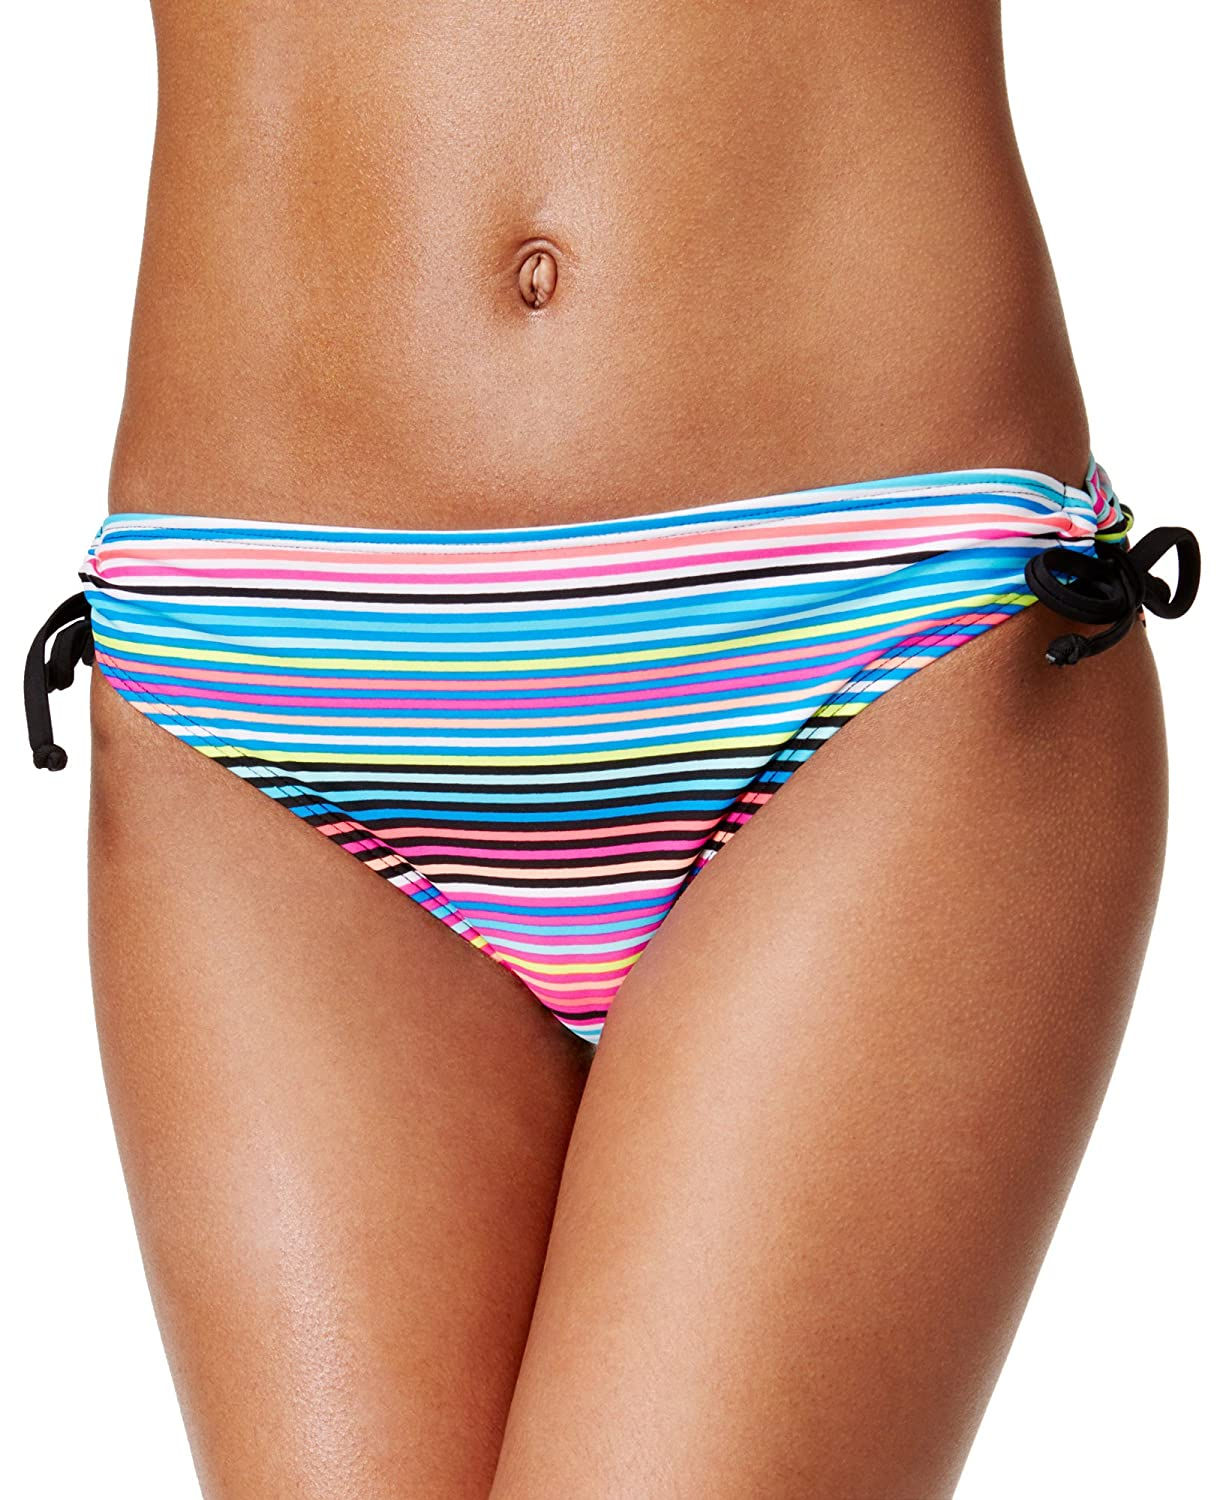 California Waves SWIMWEAR レディース B06XHS52LK Medium|マルチ